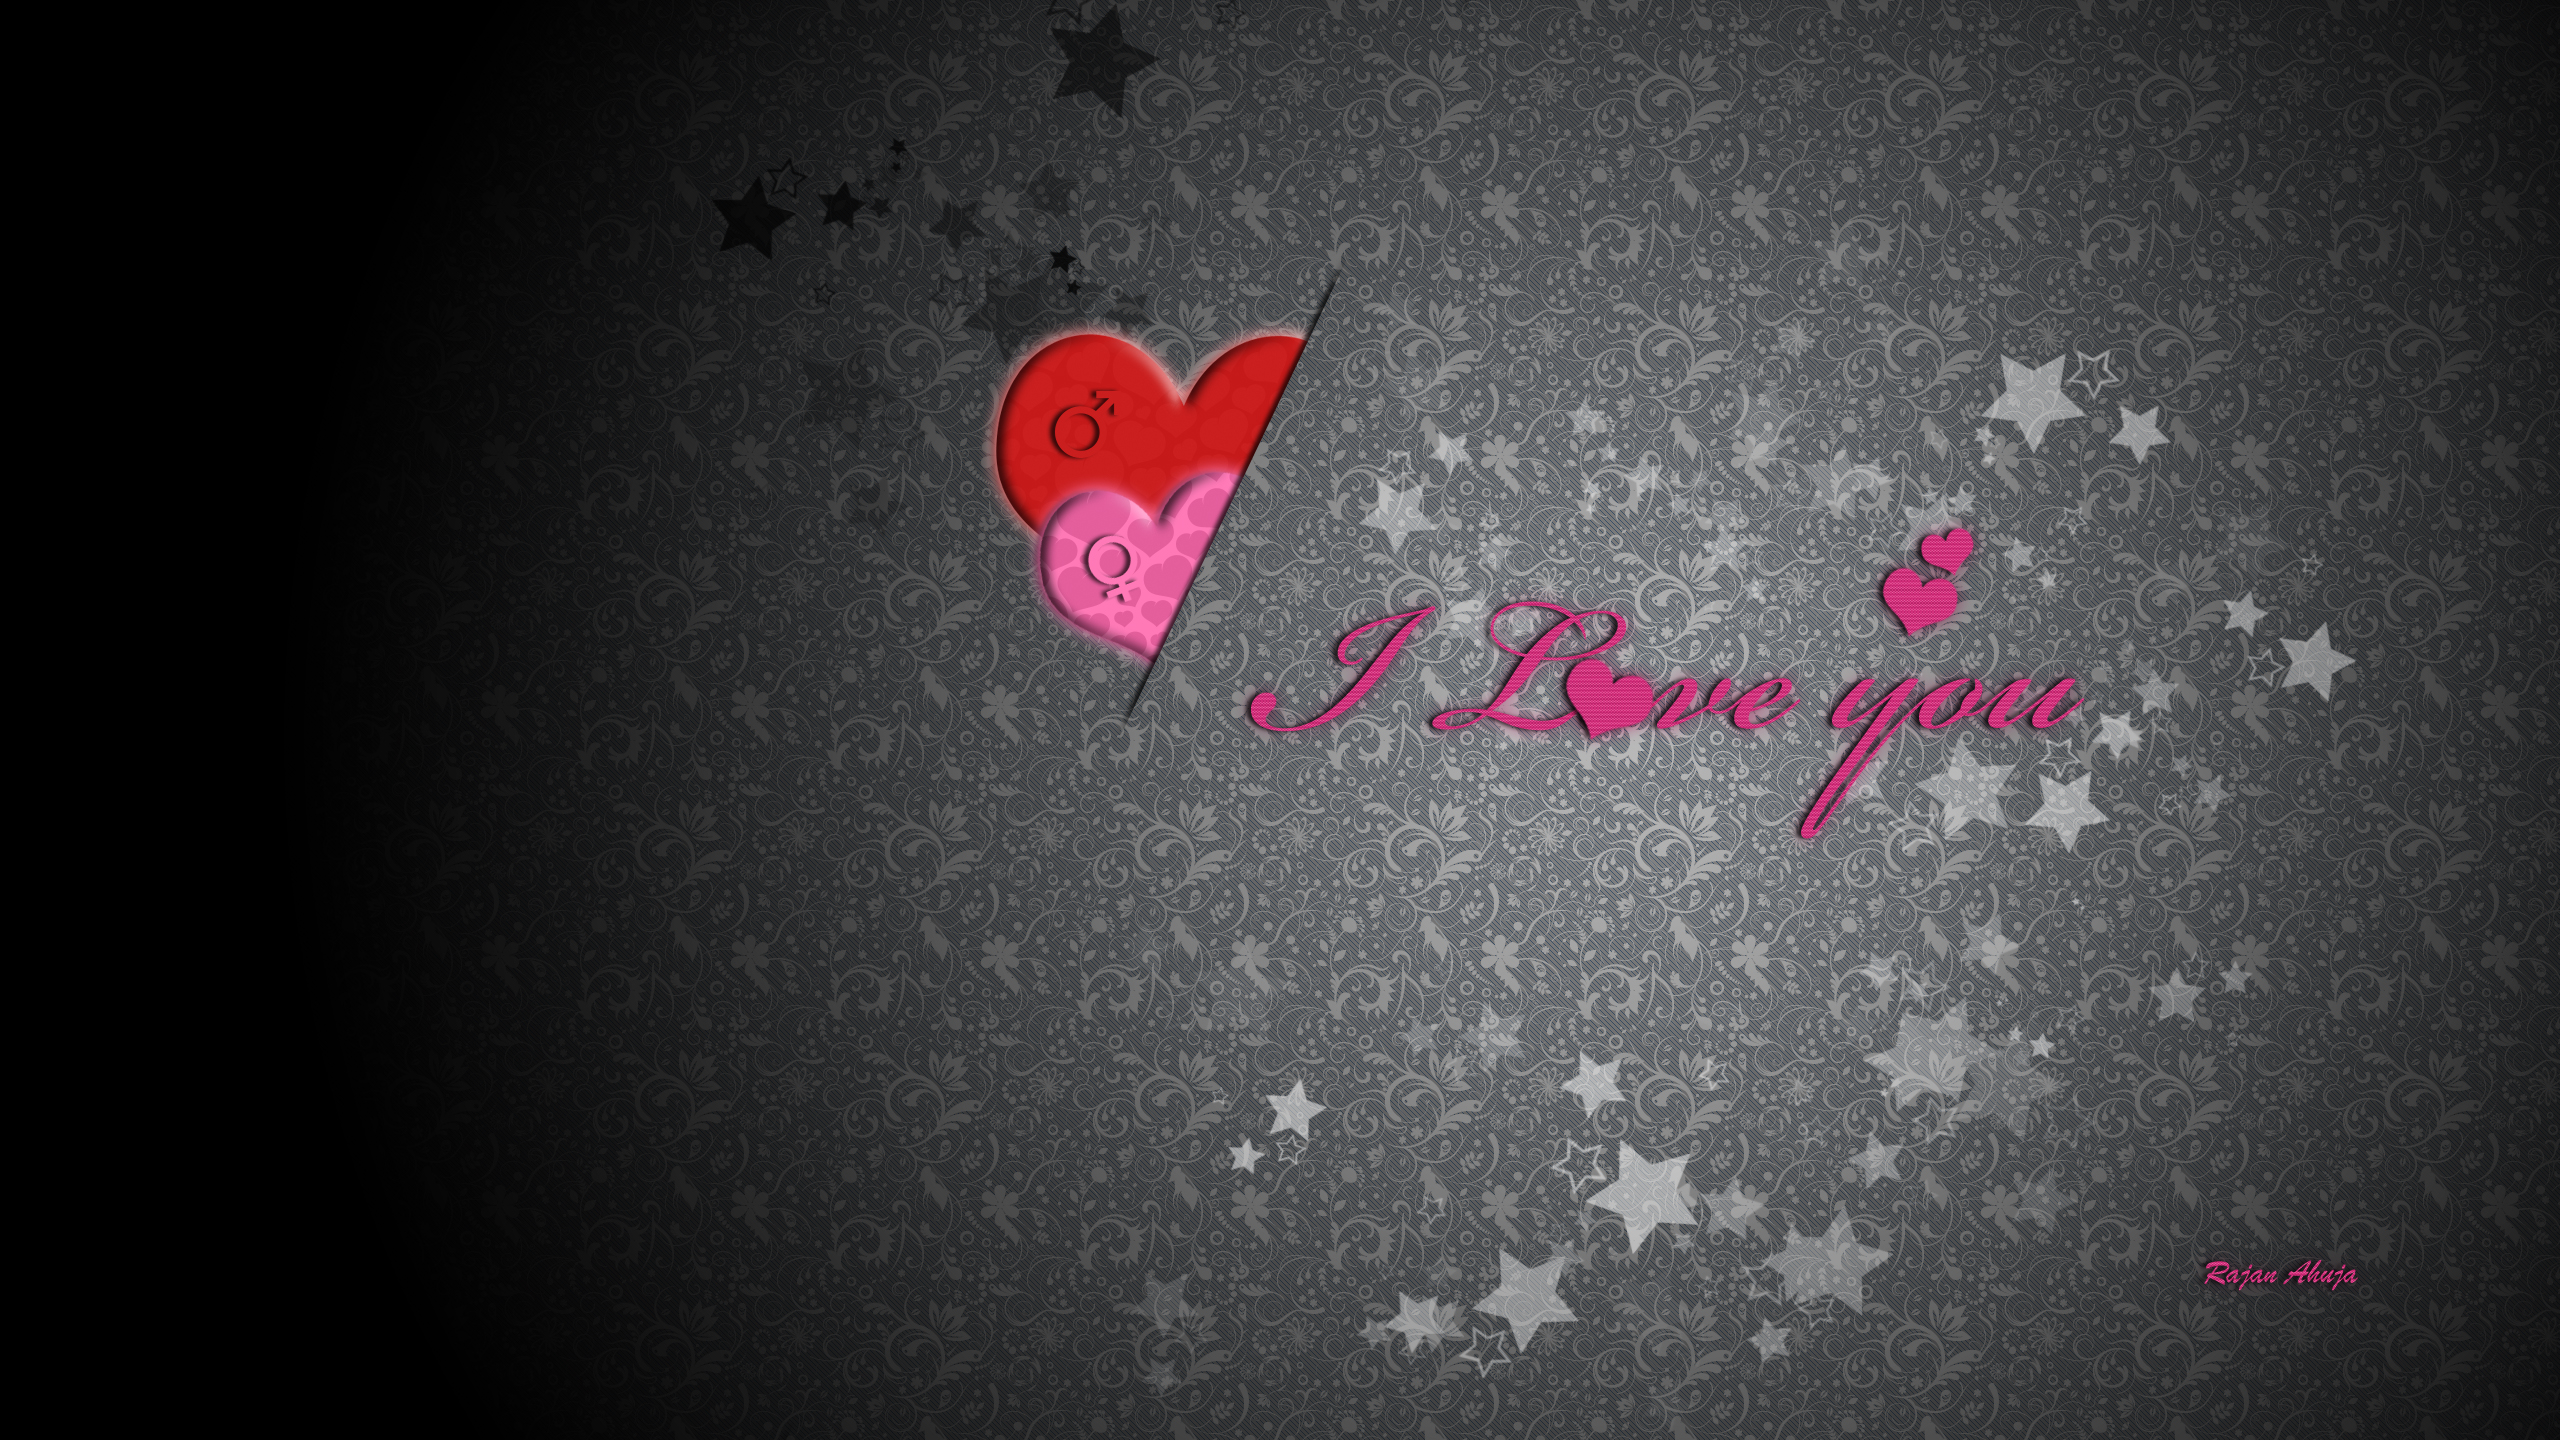 I Love You Wallpaper For Pc : 2560x1440 I love you desktop Pc and Mac wallpaper